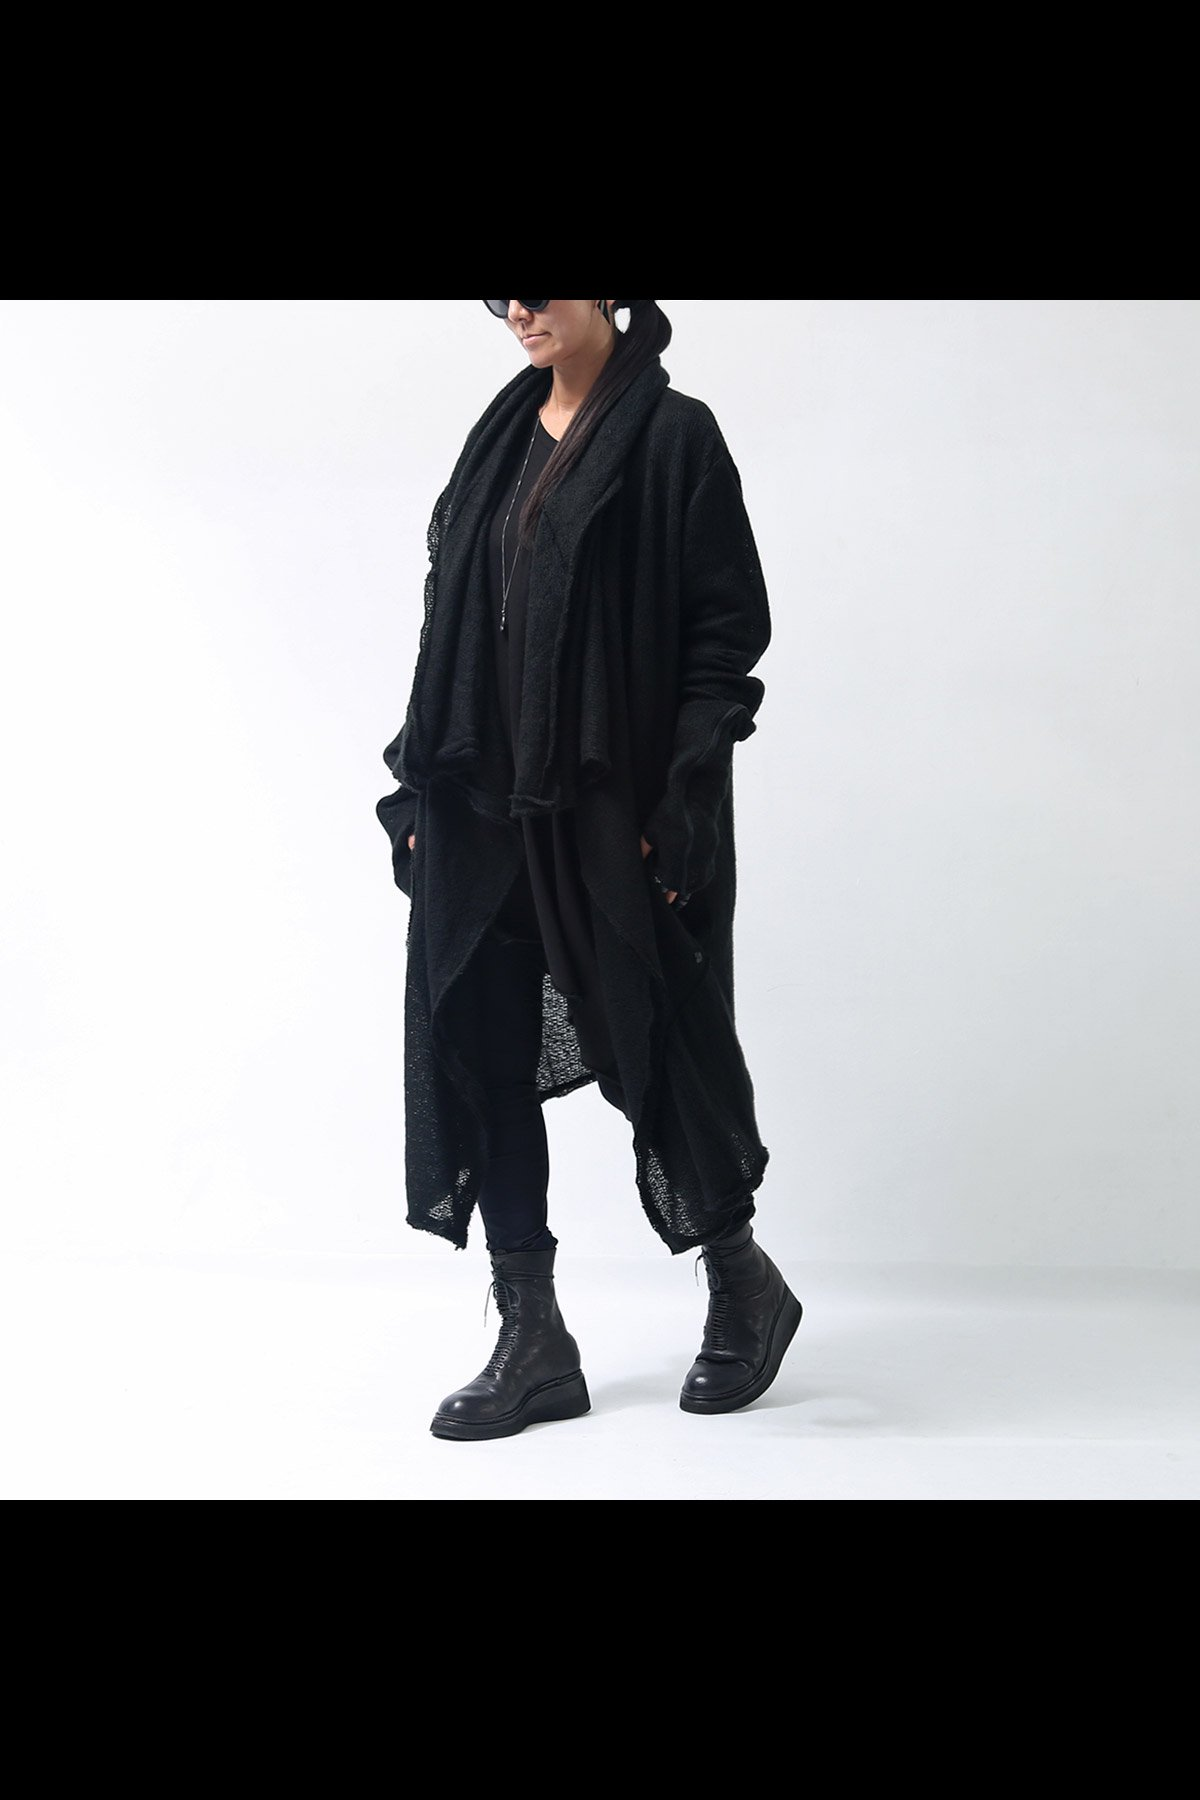 <img class='new_mark_img1' src='https://img.shop-pro.jp/img/new/icons8.gif' style='border:none;display:inline;margin:0px;padding:0px;width:auto;' />KNIT LONG CARDIGAN TS40_BLACK